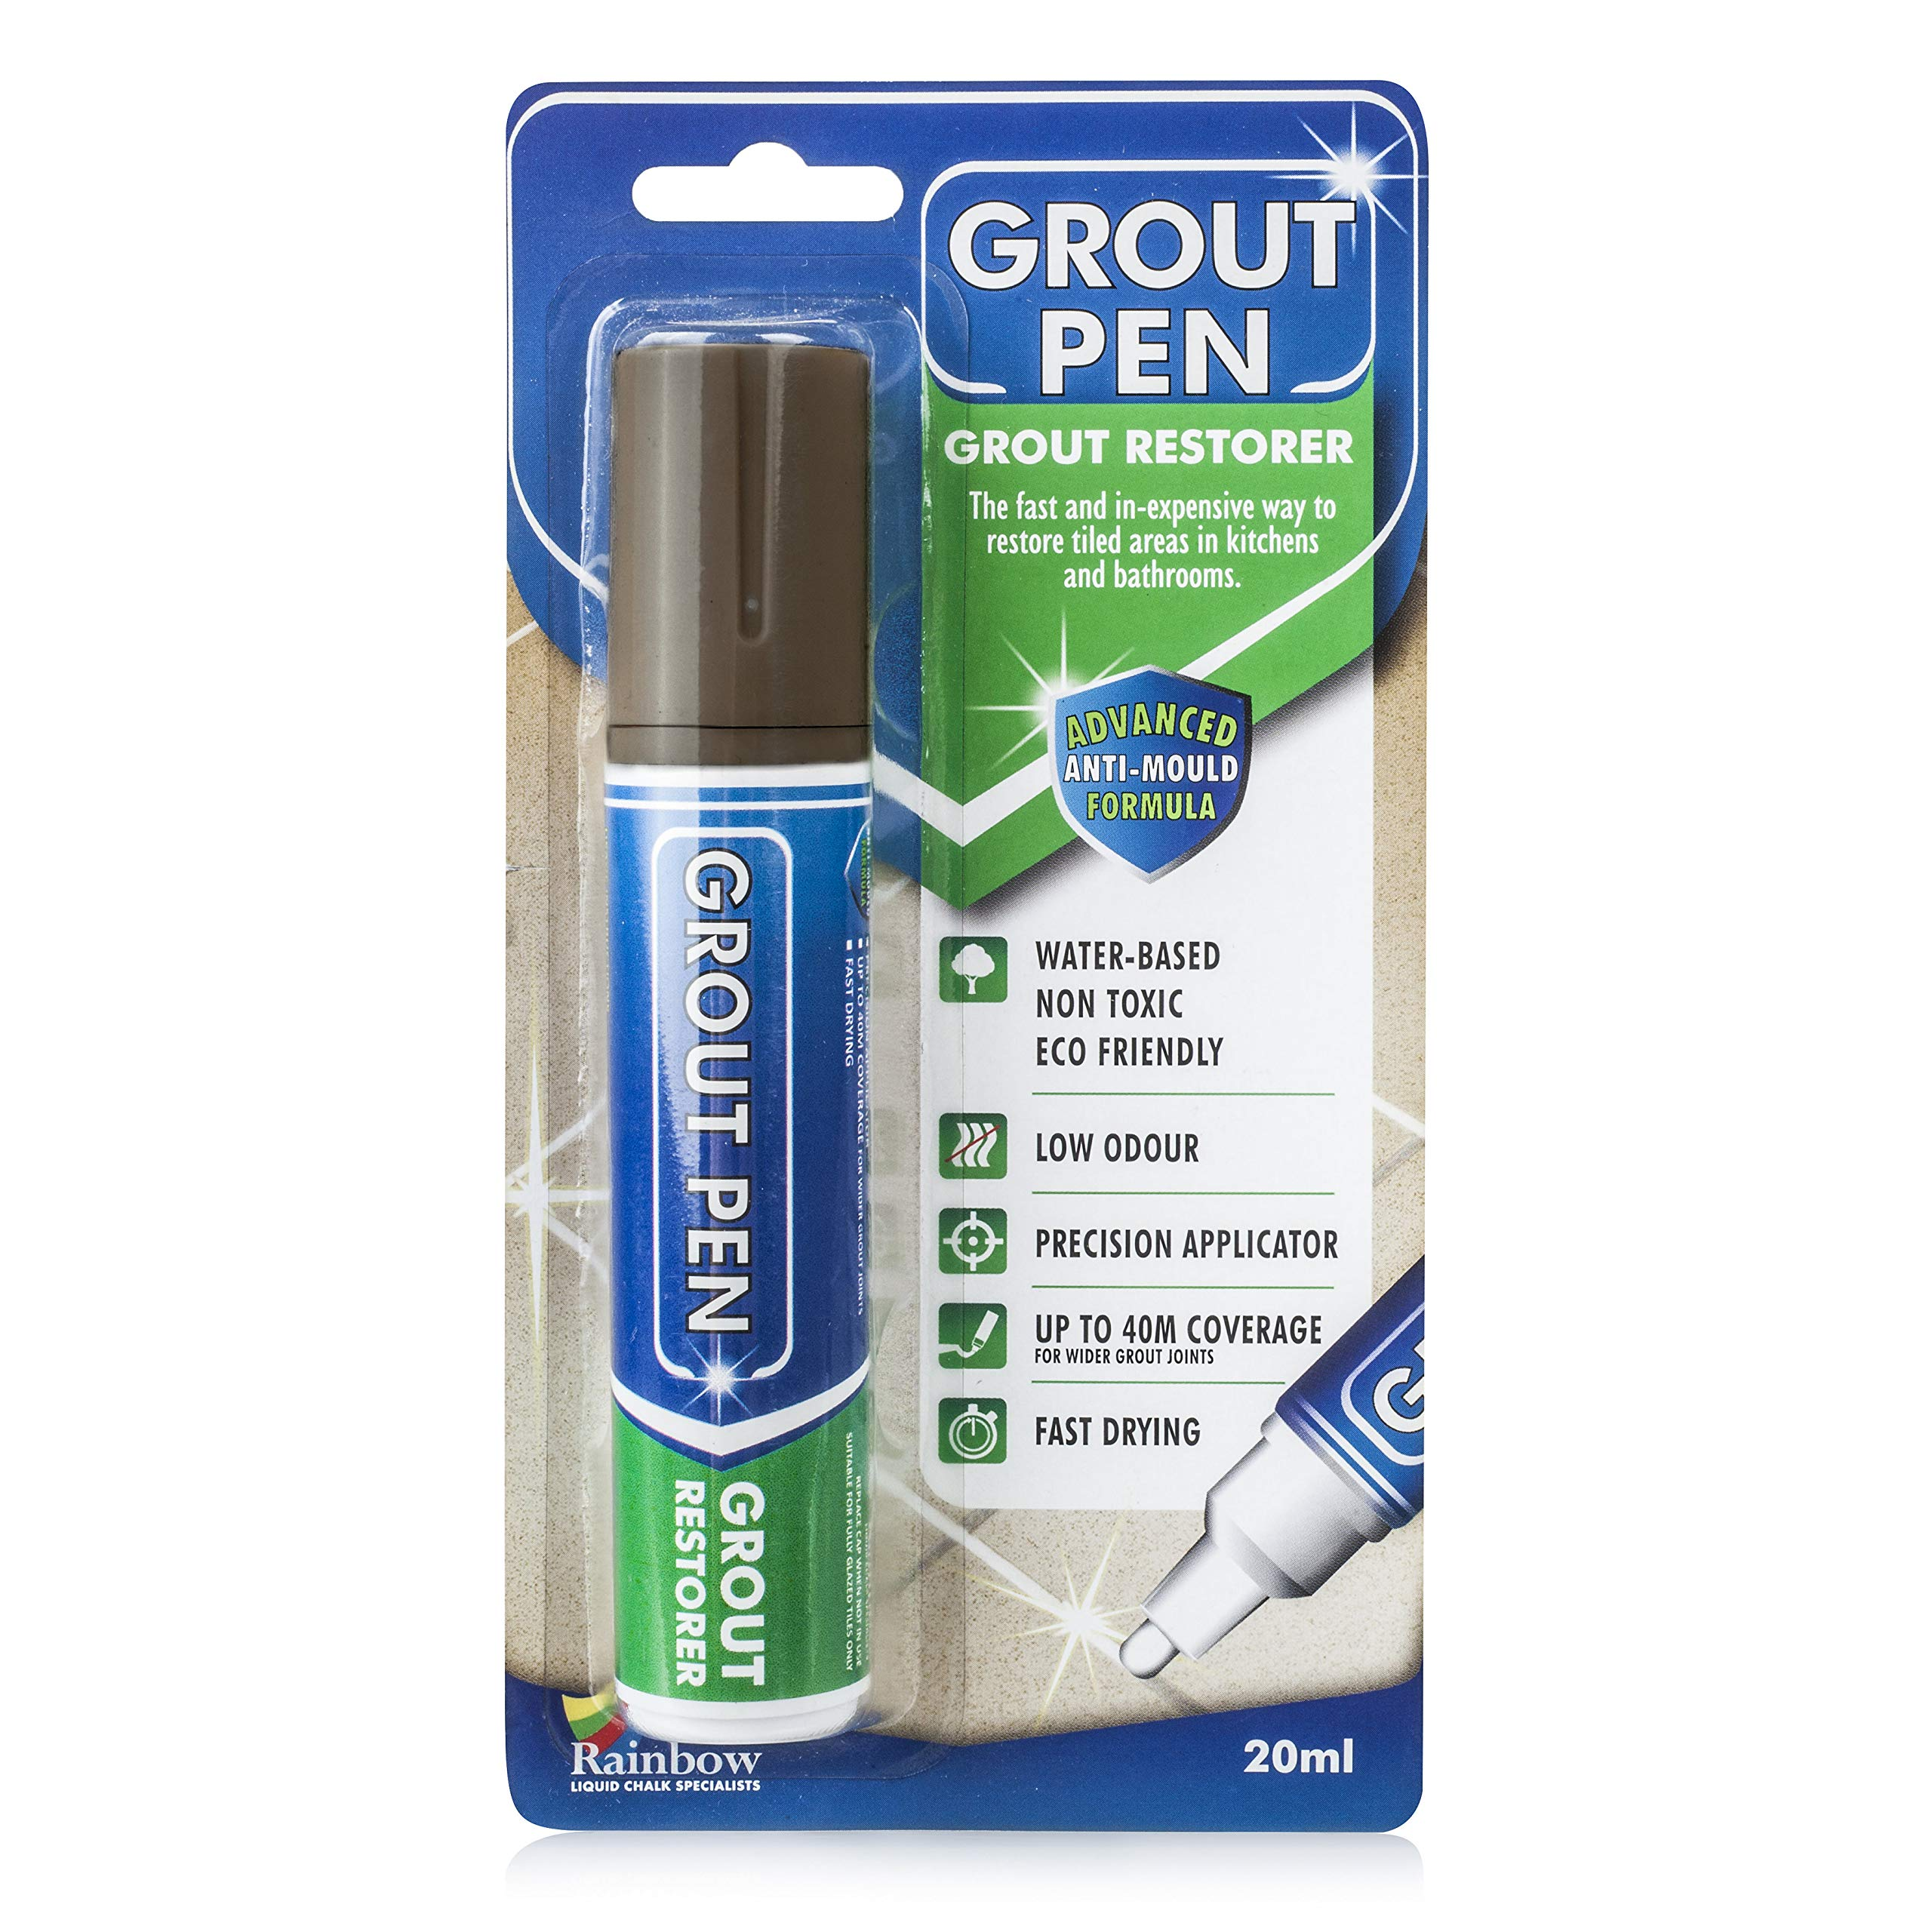 Grout Pen Large Brown - Ideal to Restore the Look of Tile Grout Lines